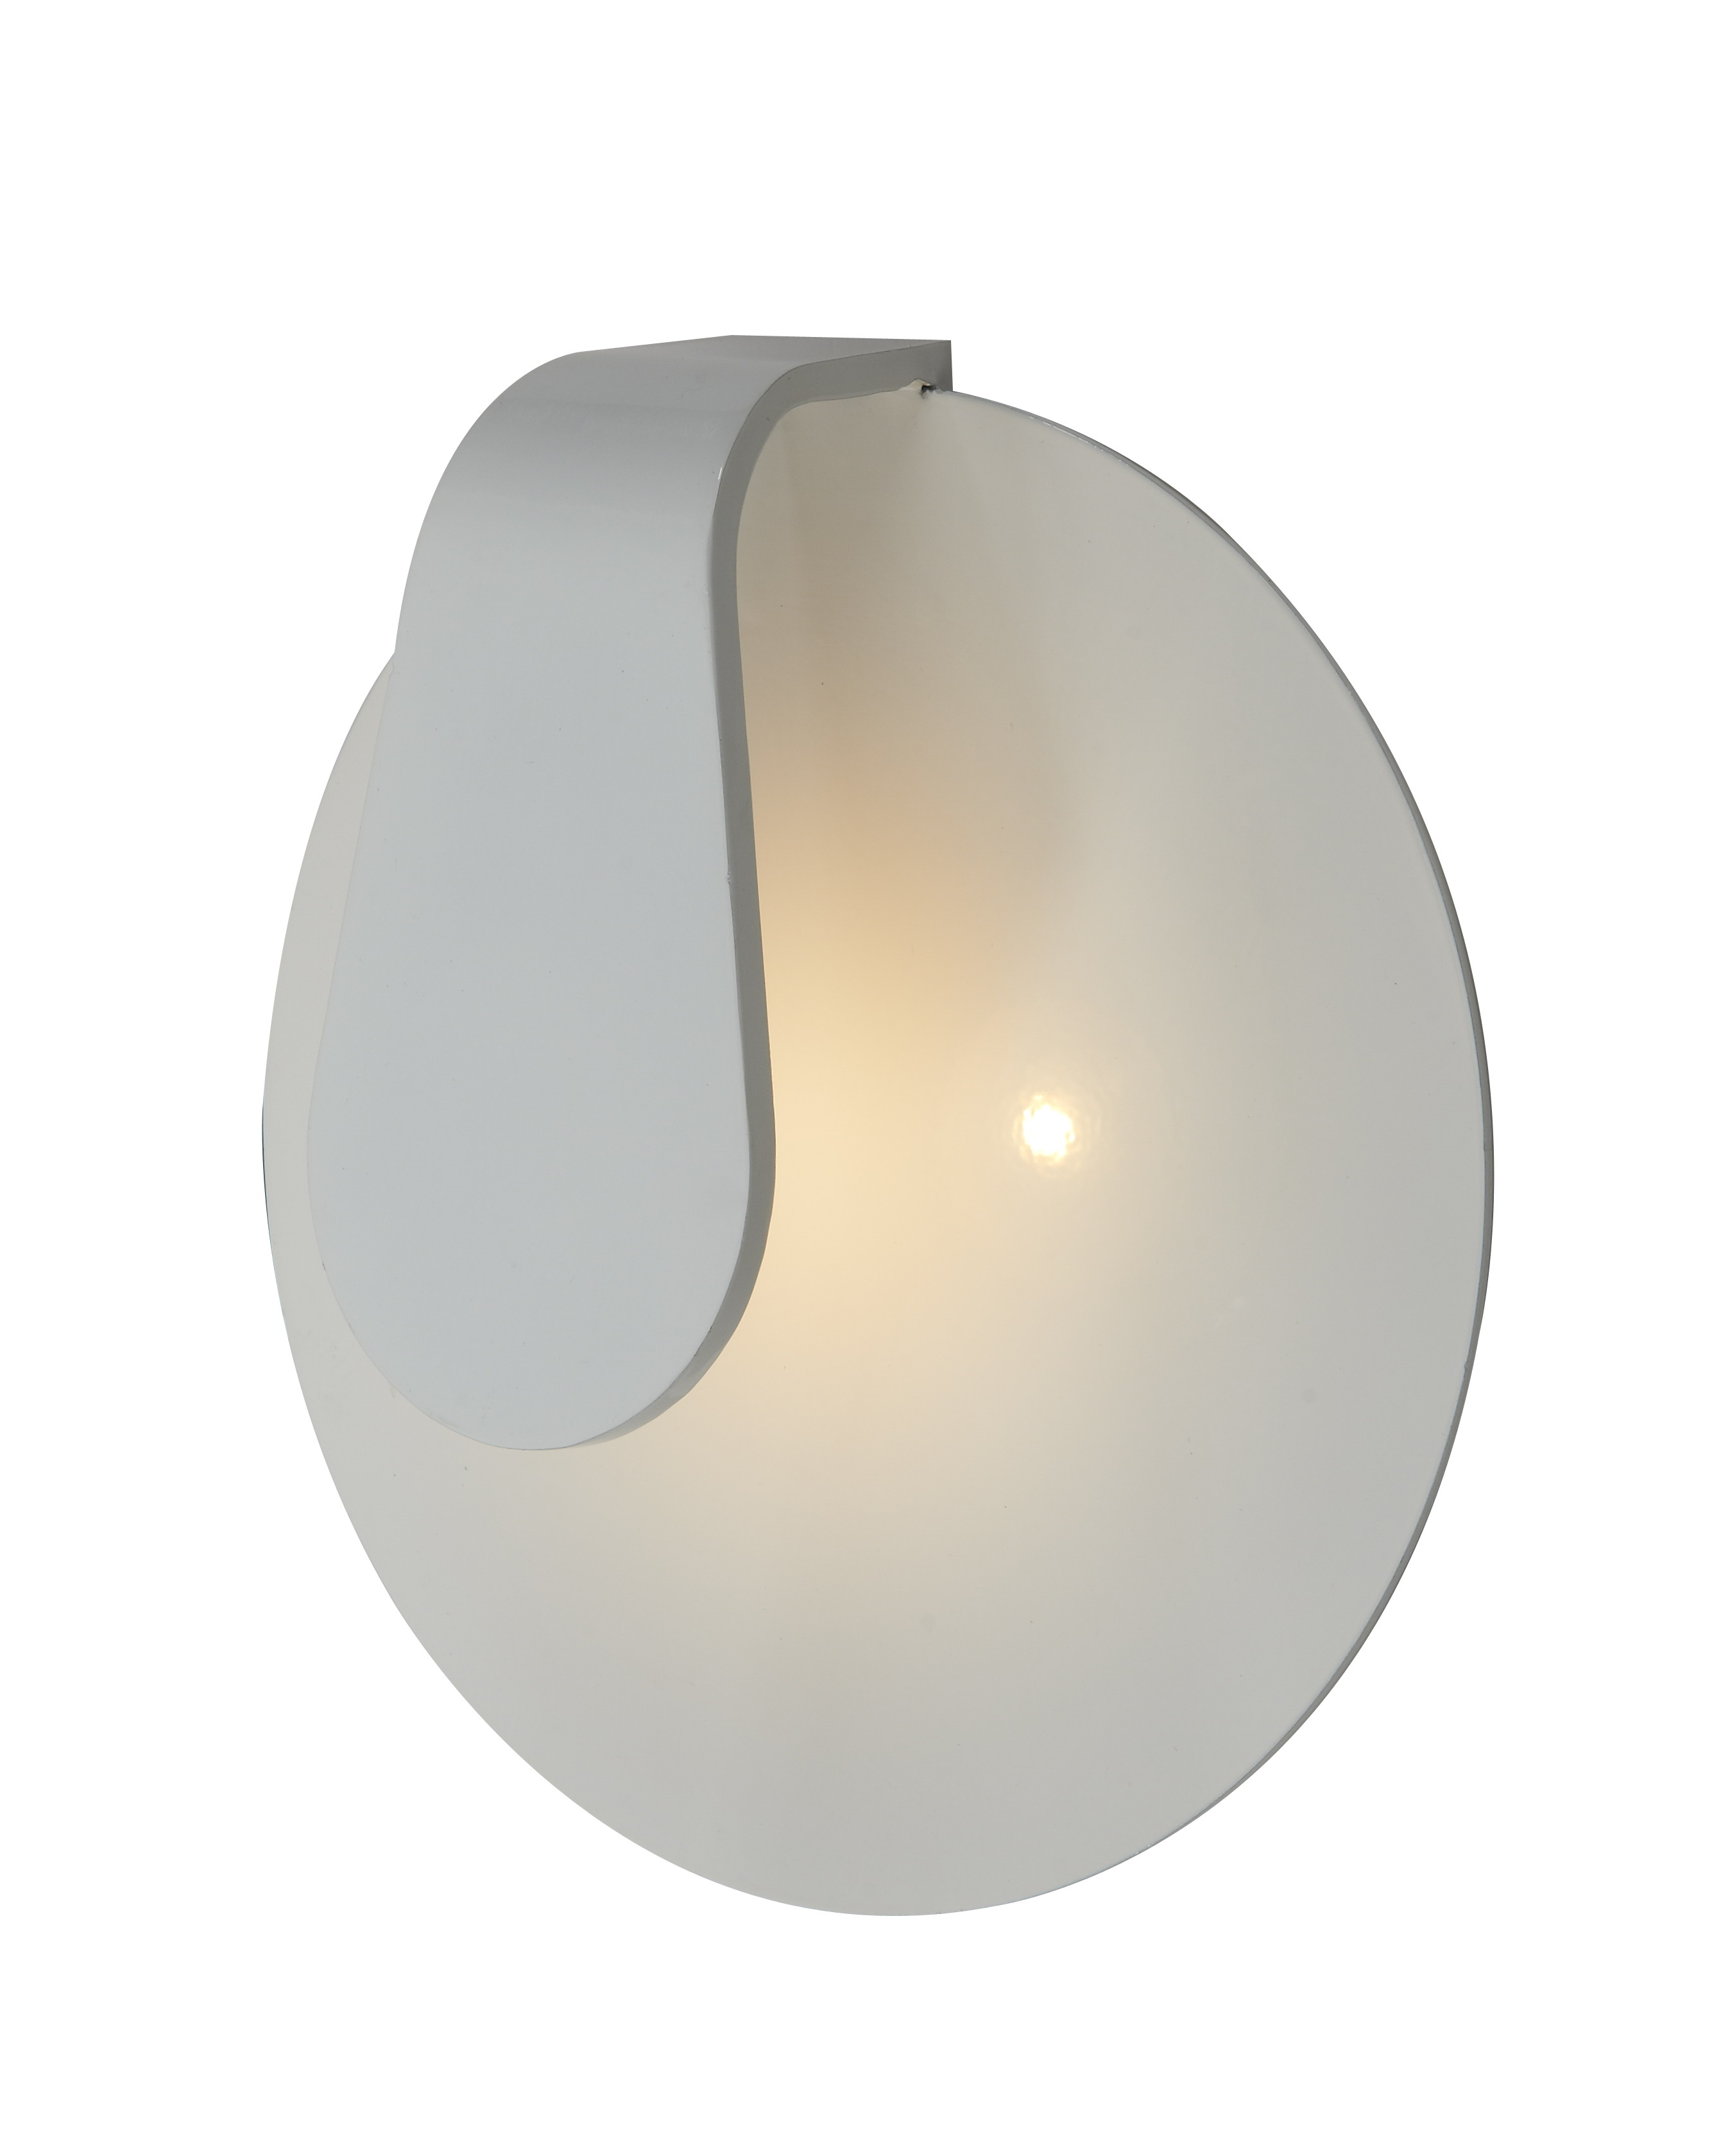 LED Wall Light<br>ARR-11004-01-WH-LED